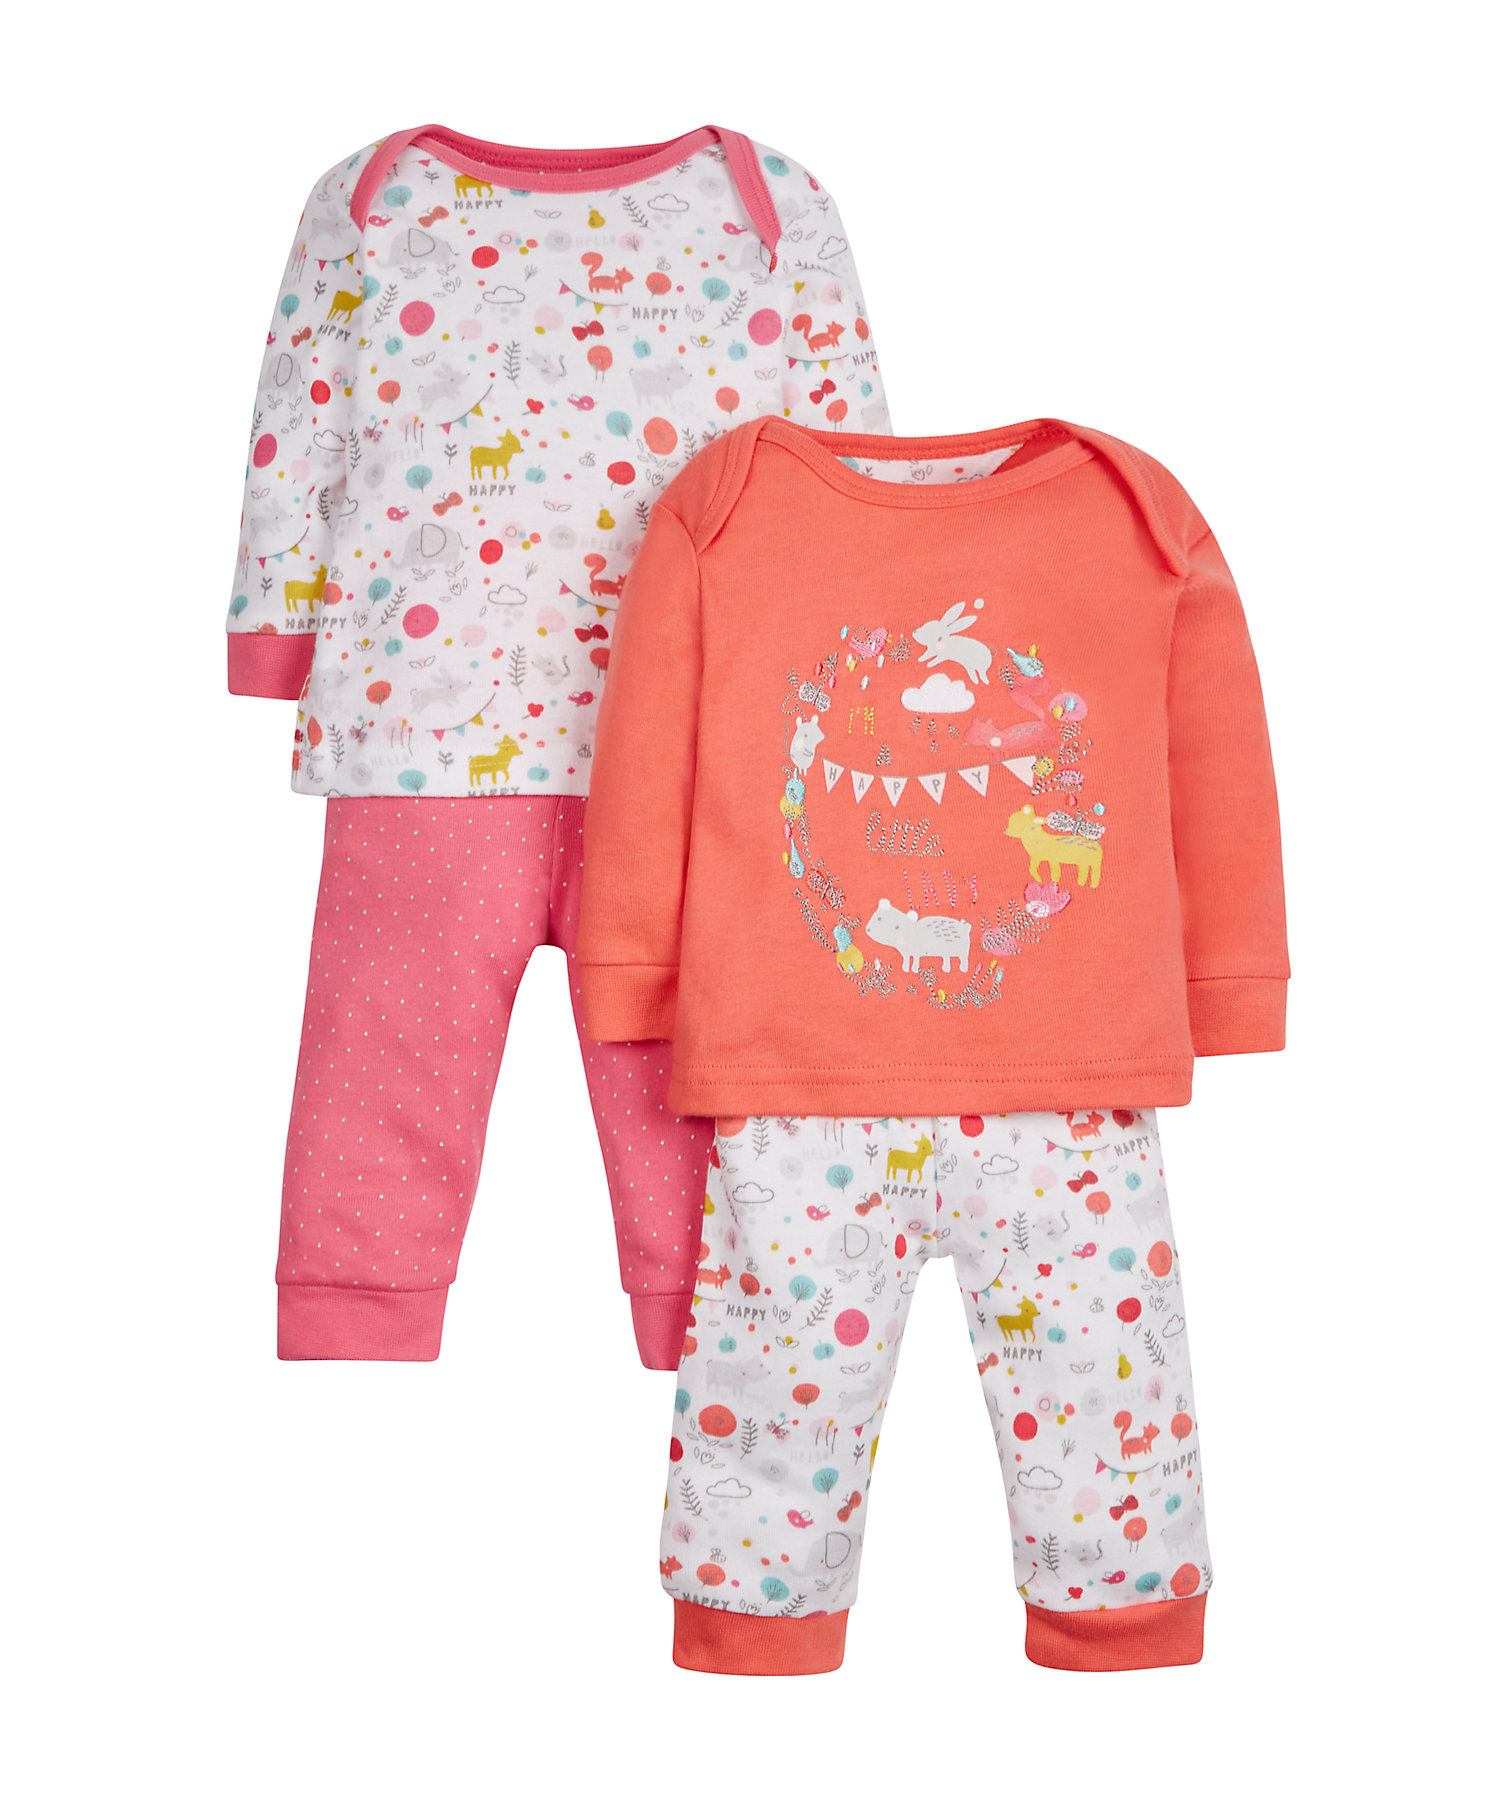 Mothercare | Girls Full Sleeves Pyjama Set Embroidered - Pack Of 2 - Coral